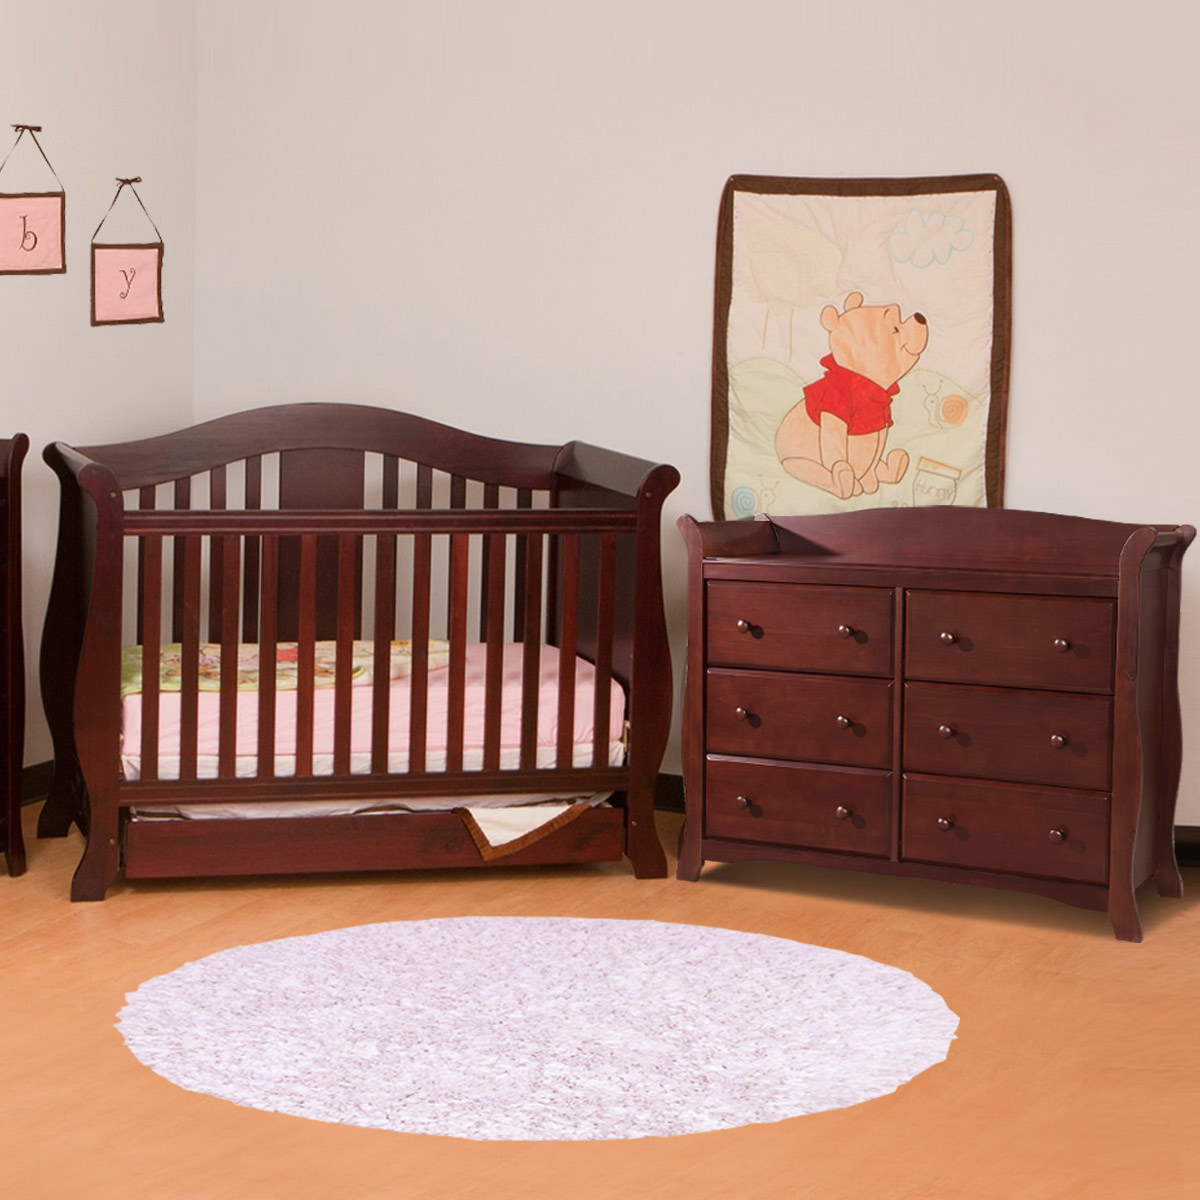 Storkcraft 2 Piece Nursery Set Vittoria Convertible Crib And Avalon 5 Drawer Dresser In Cherry Free Shipping